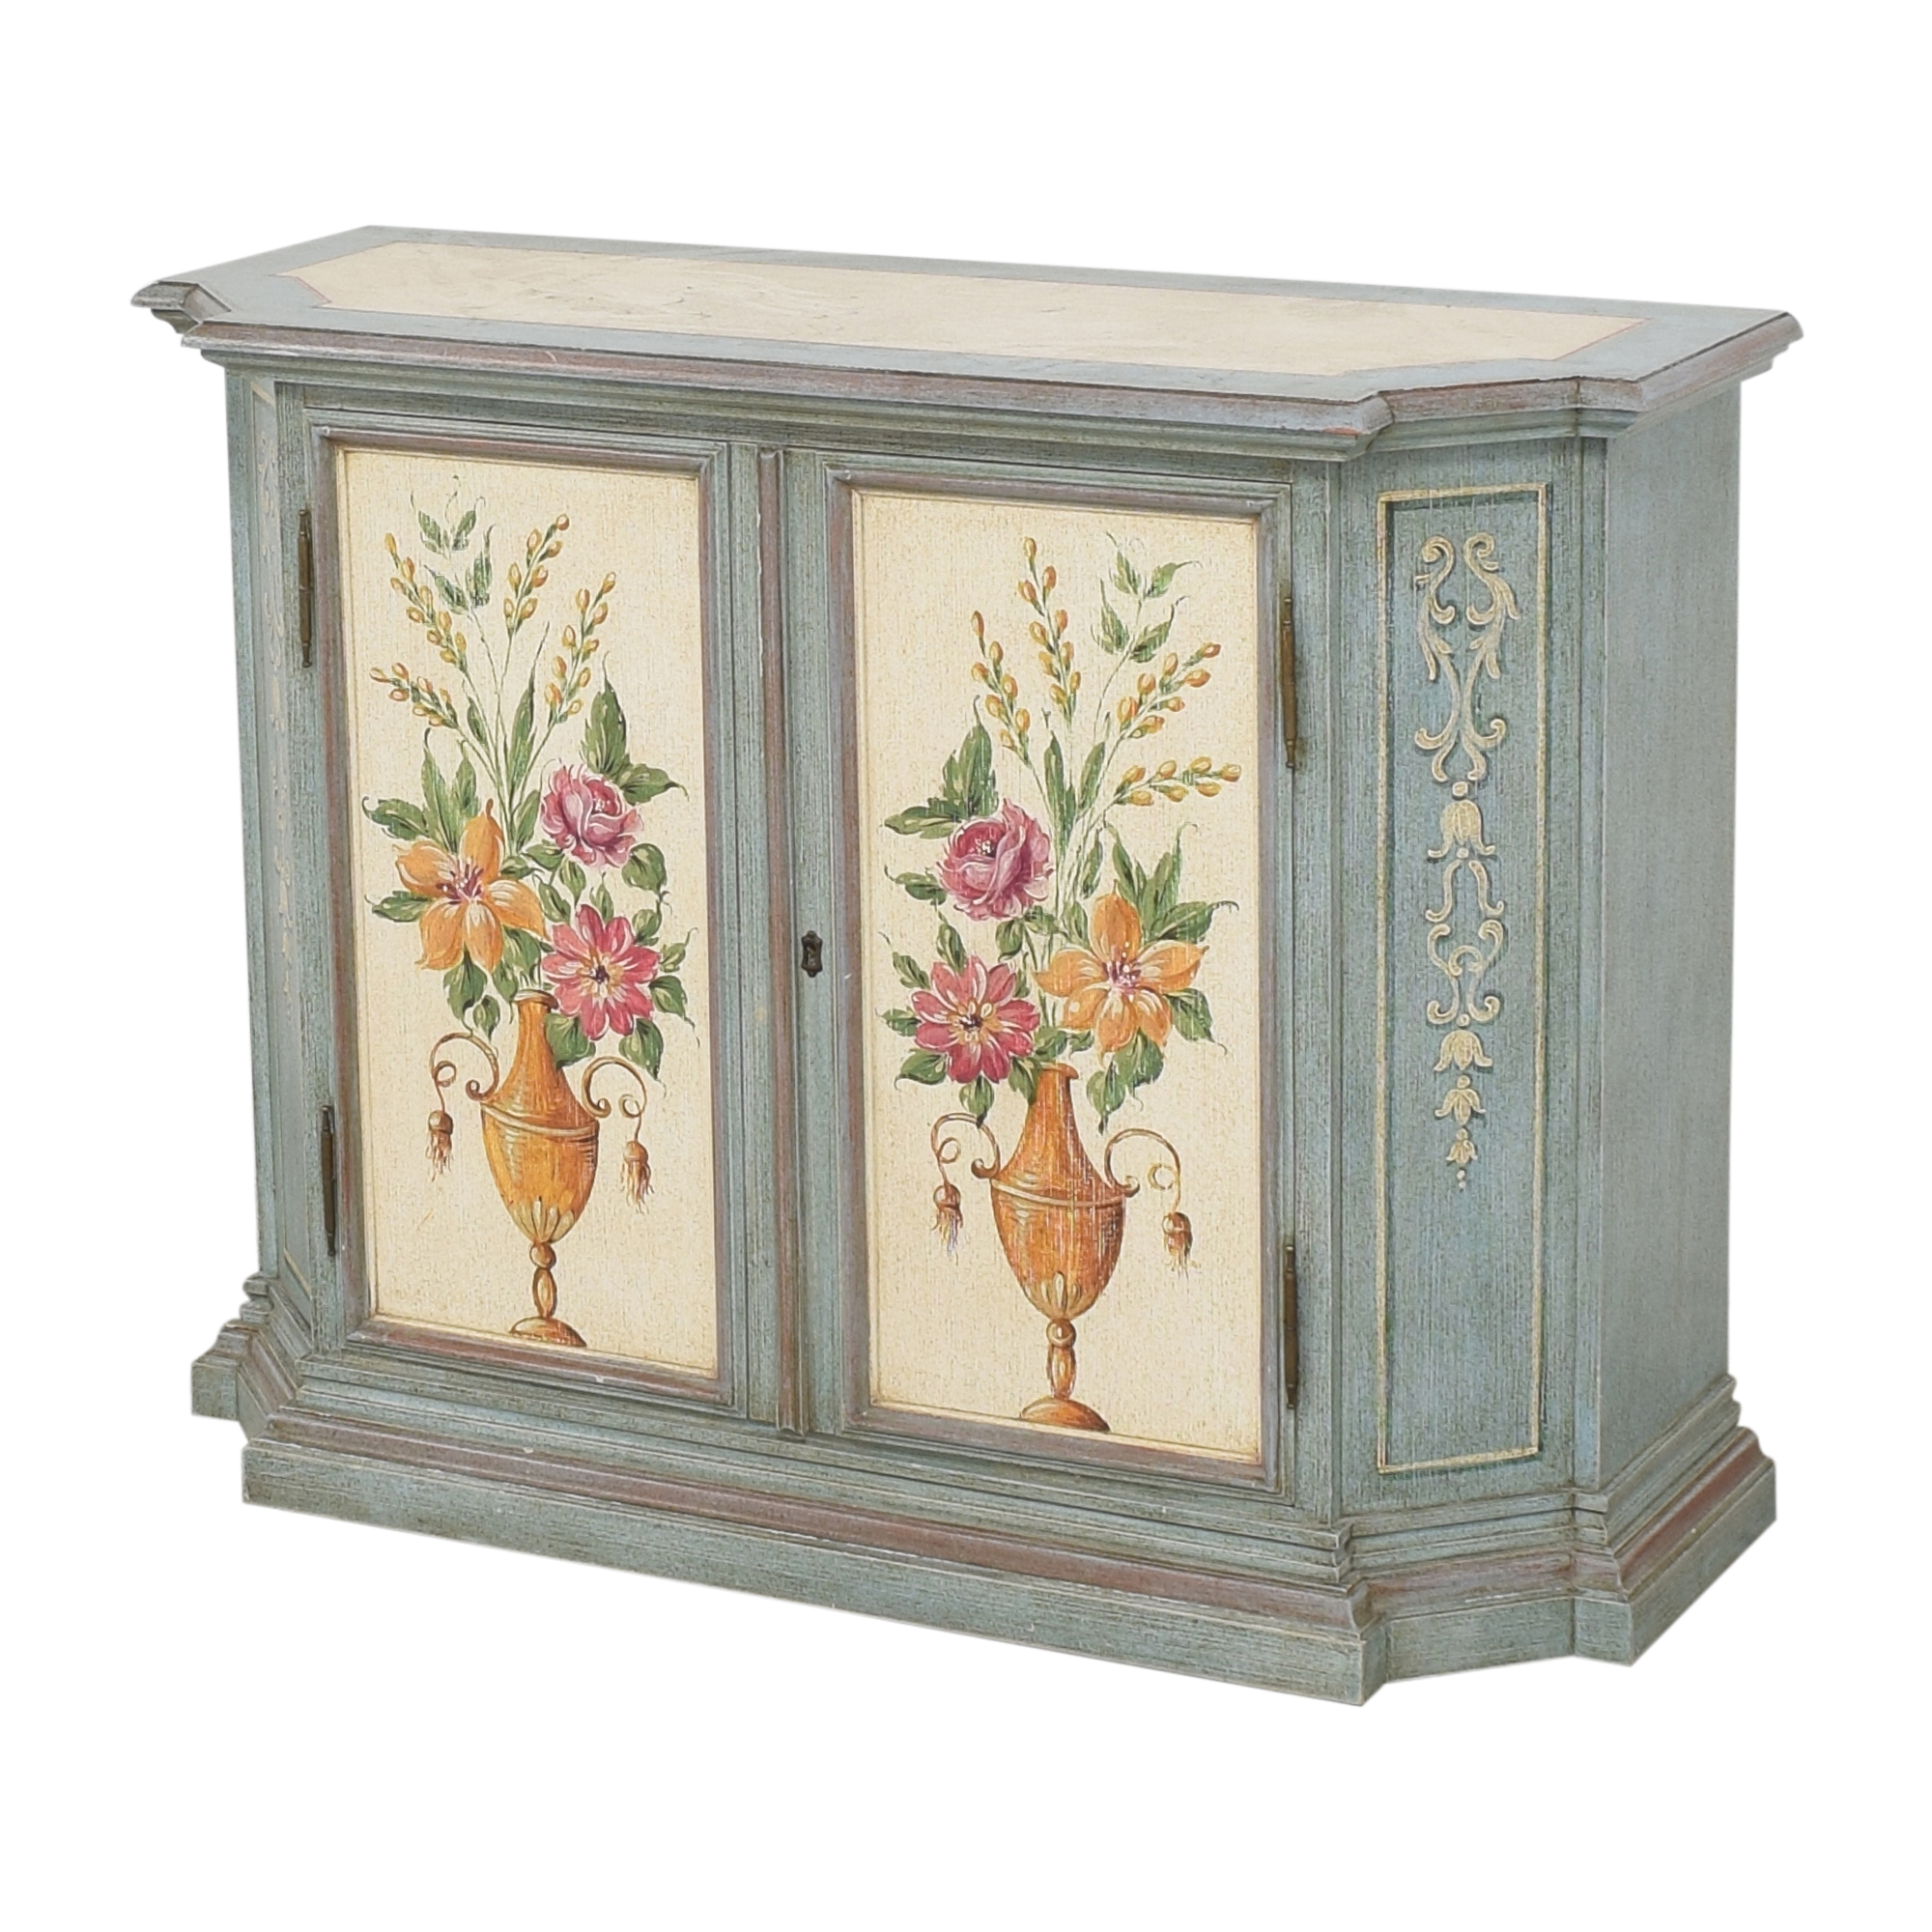 Vintage Painted Cabinet Cabinets & Sideboards